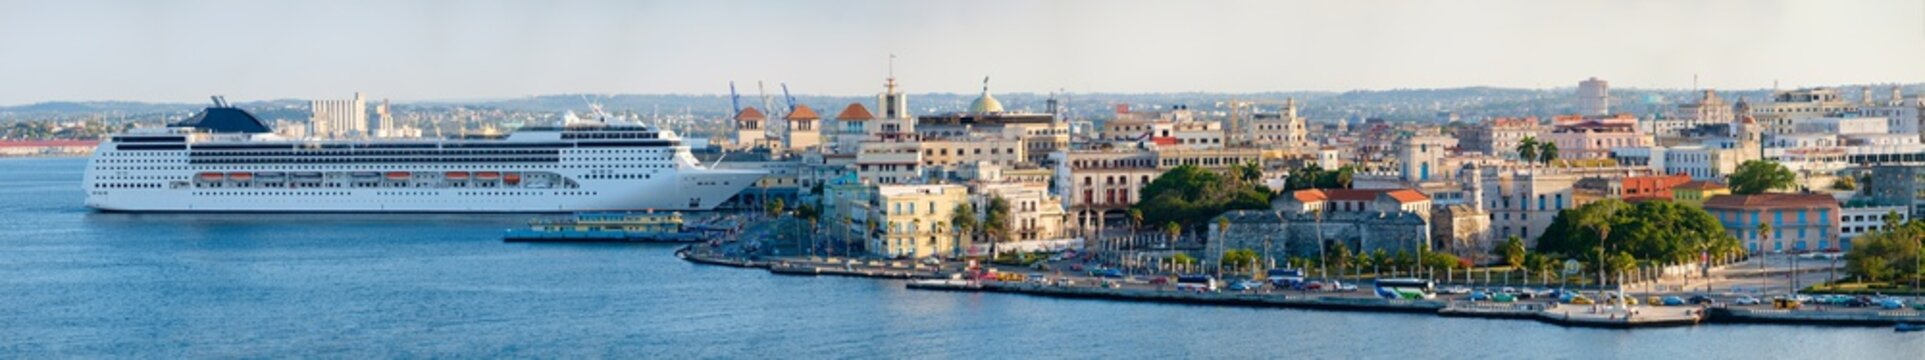 Very high resolution panoramic image of Old Havana including historic buildings and a modern cruise ship